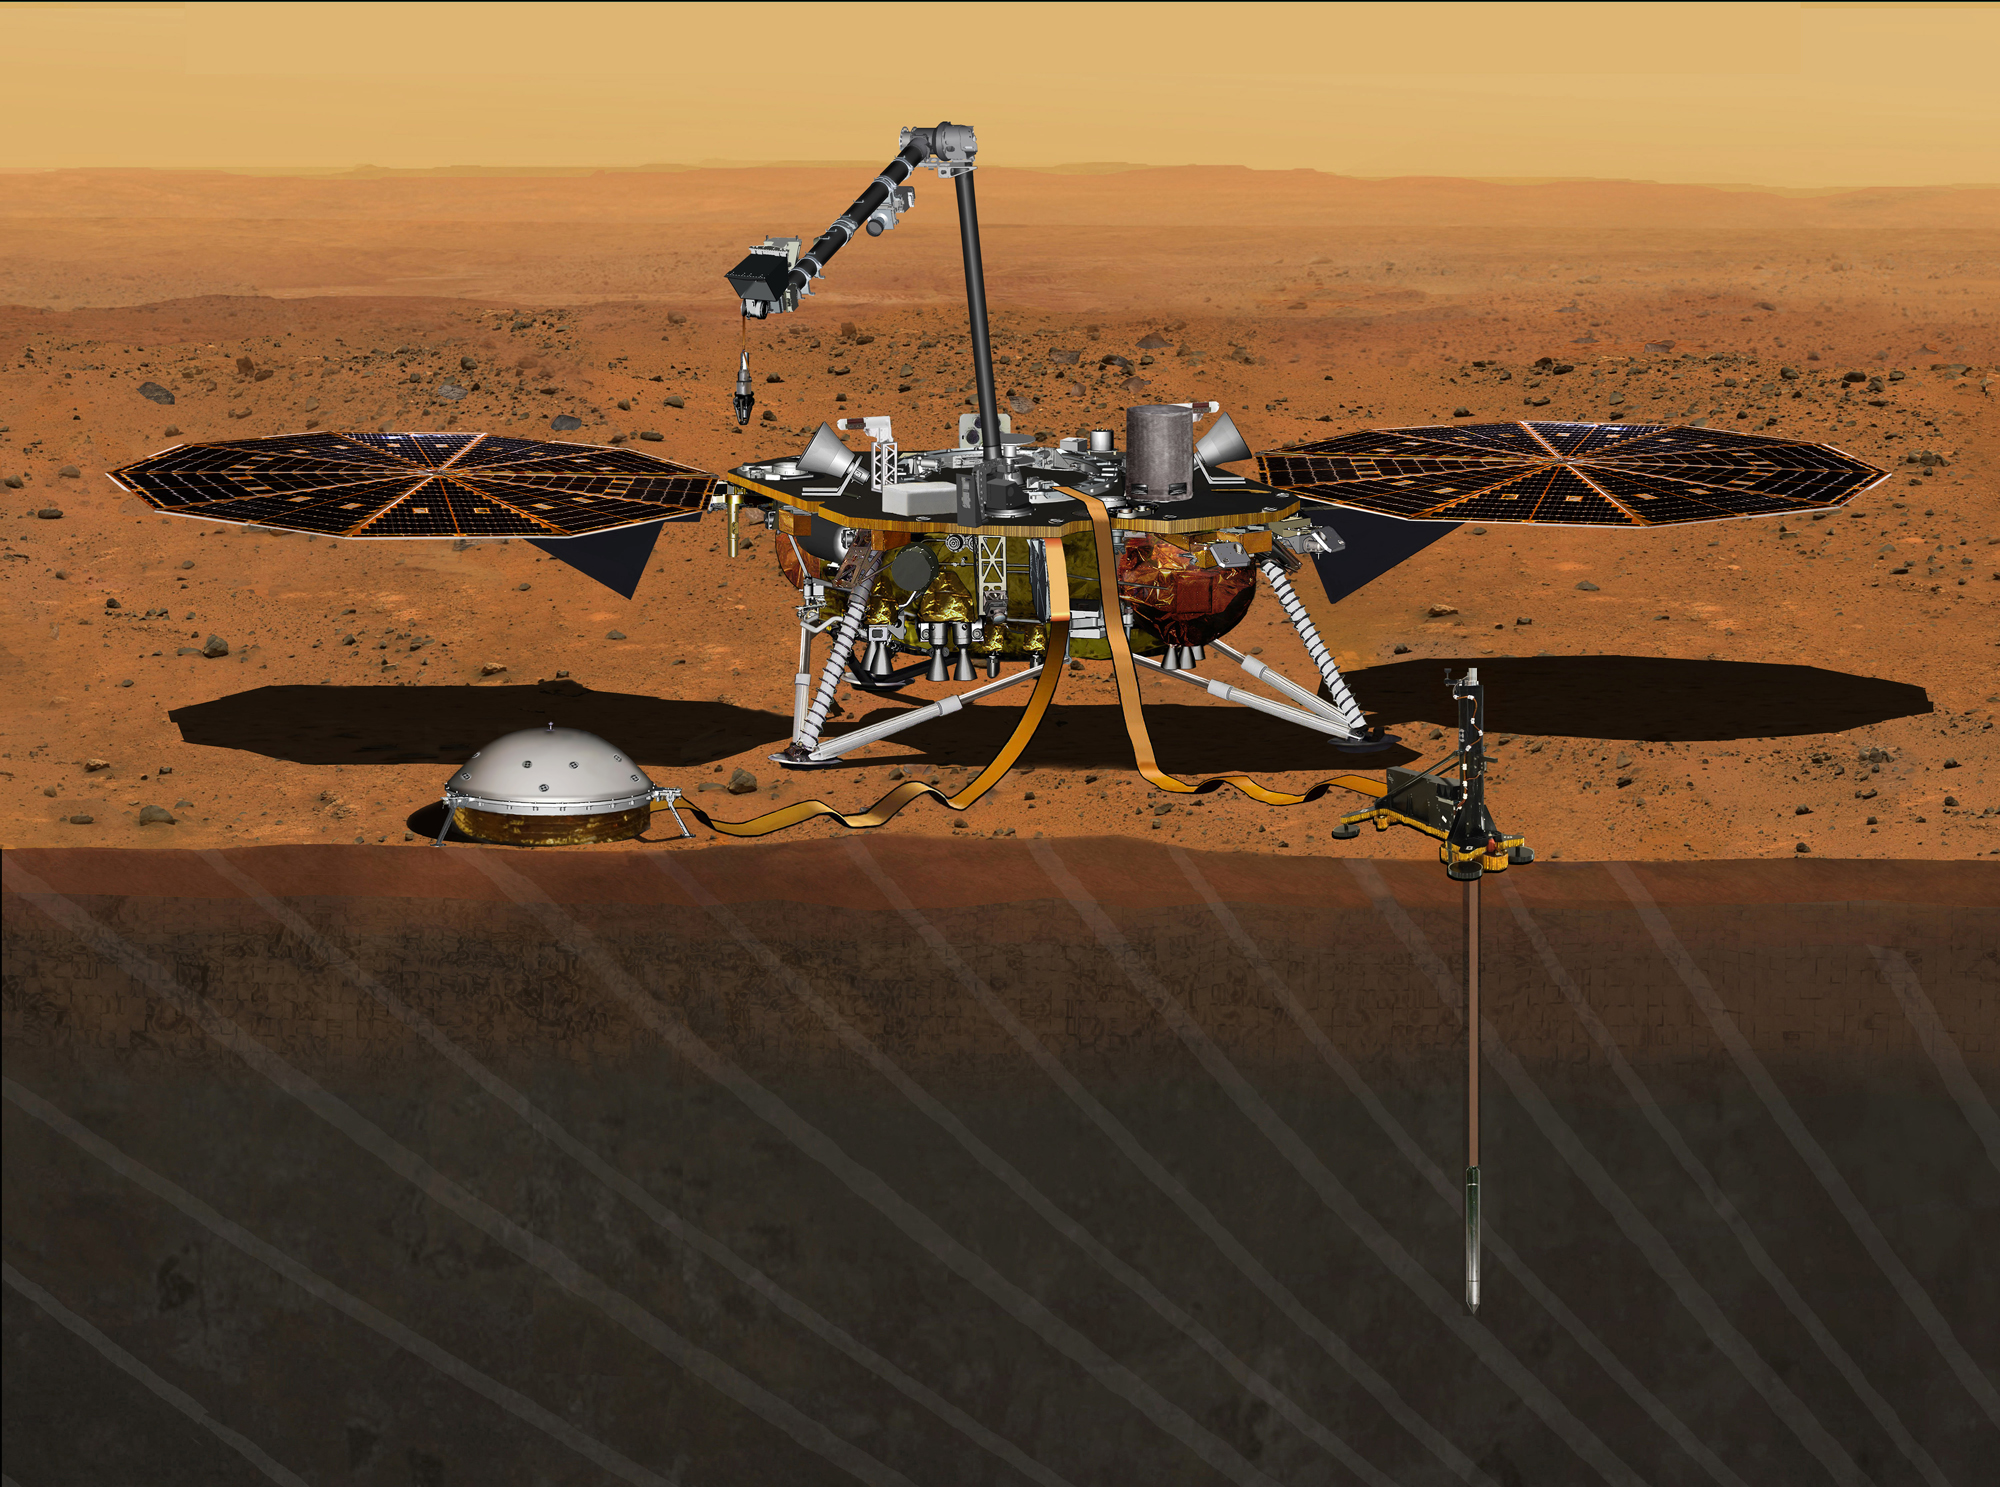 NASA's Next Mars Lander Won't Launch in 2016, Leaky Instrument to Blame